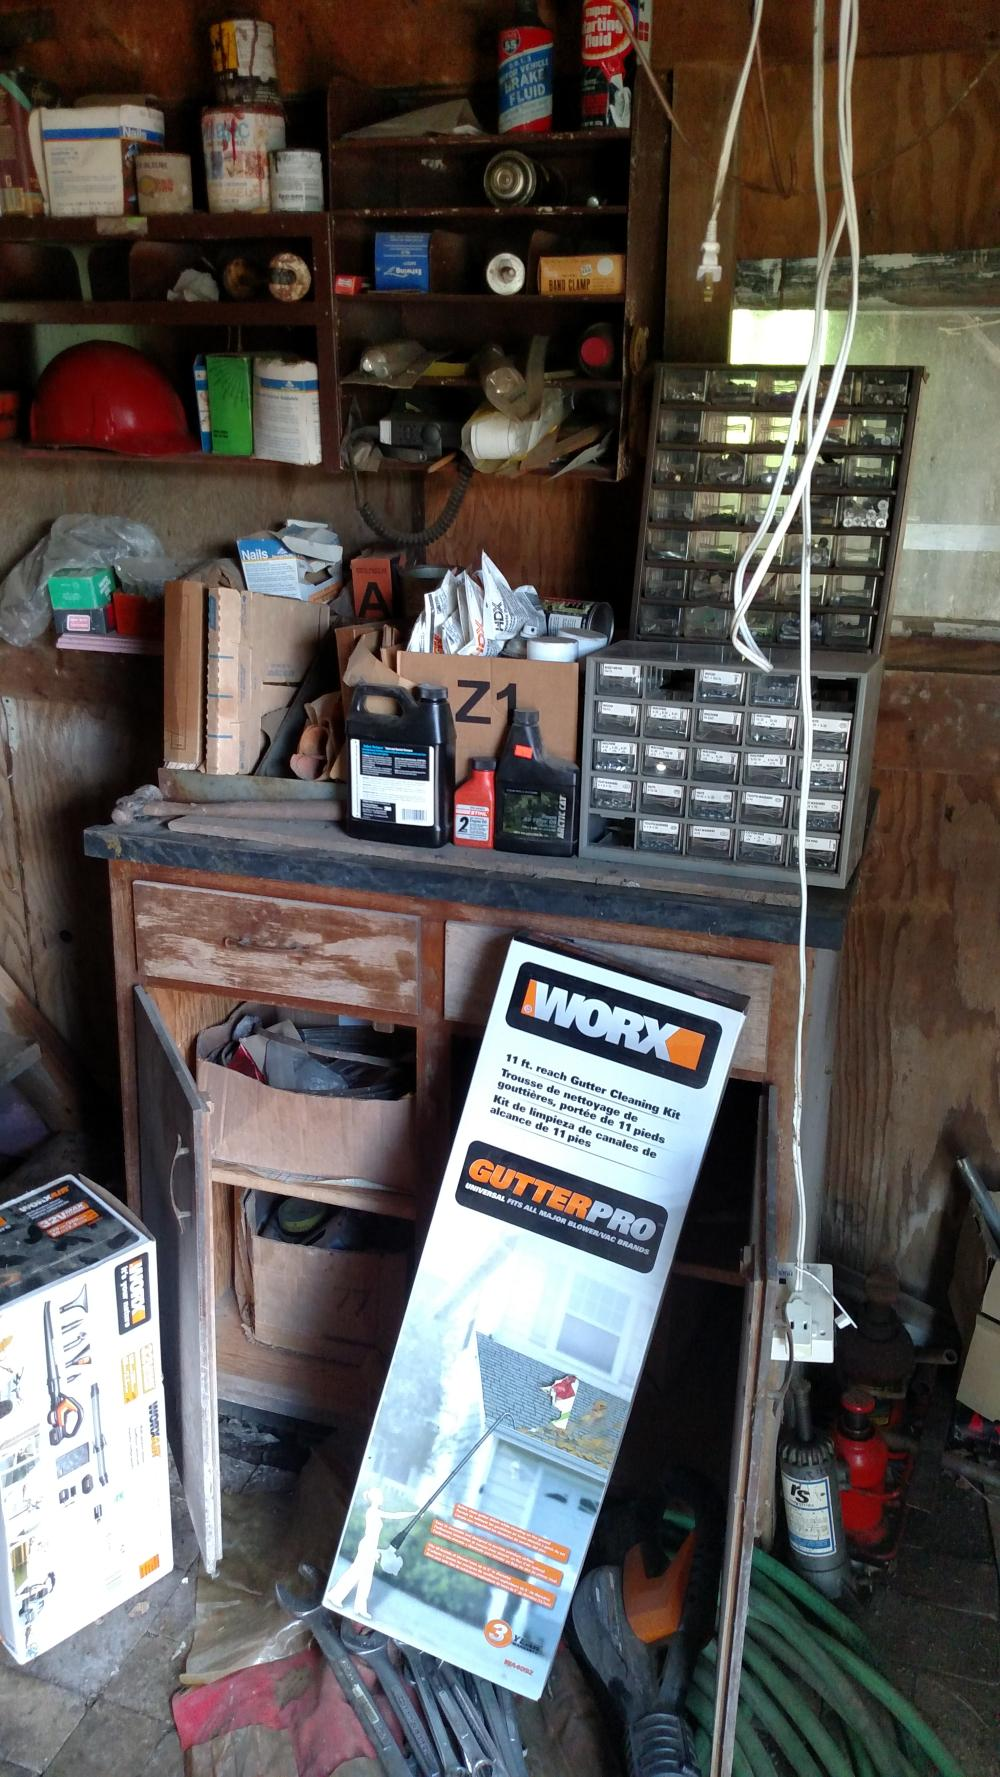 side wall contents - tool caddies, nuts and bolts, Craftsman wrenches, bottle jacks, Worx battery powered tools